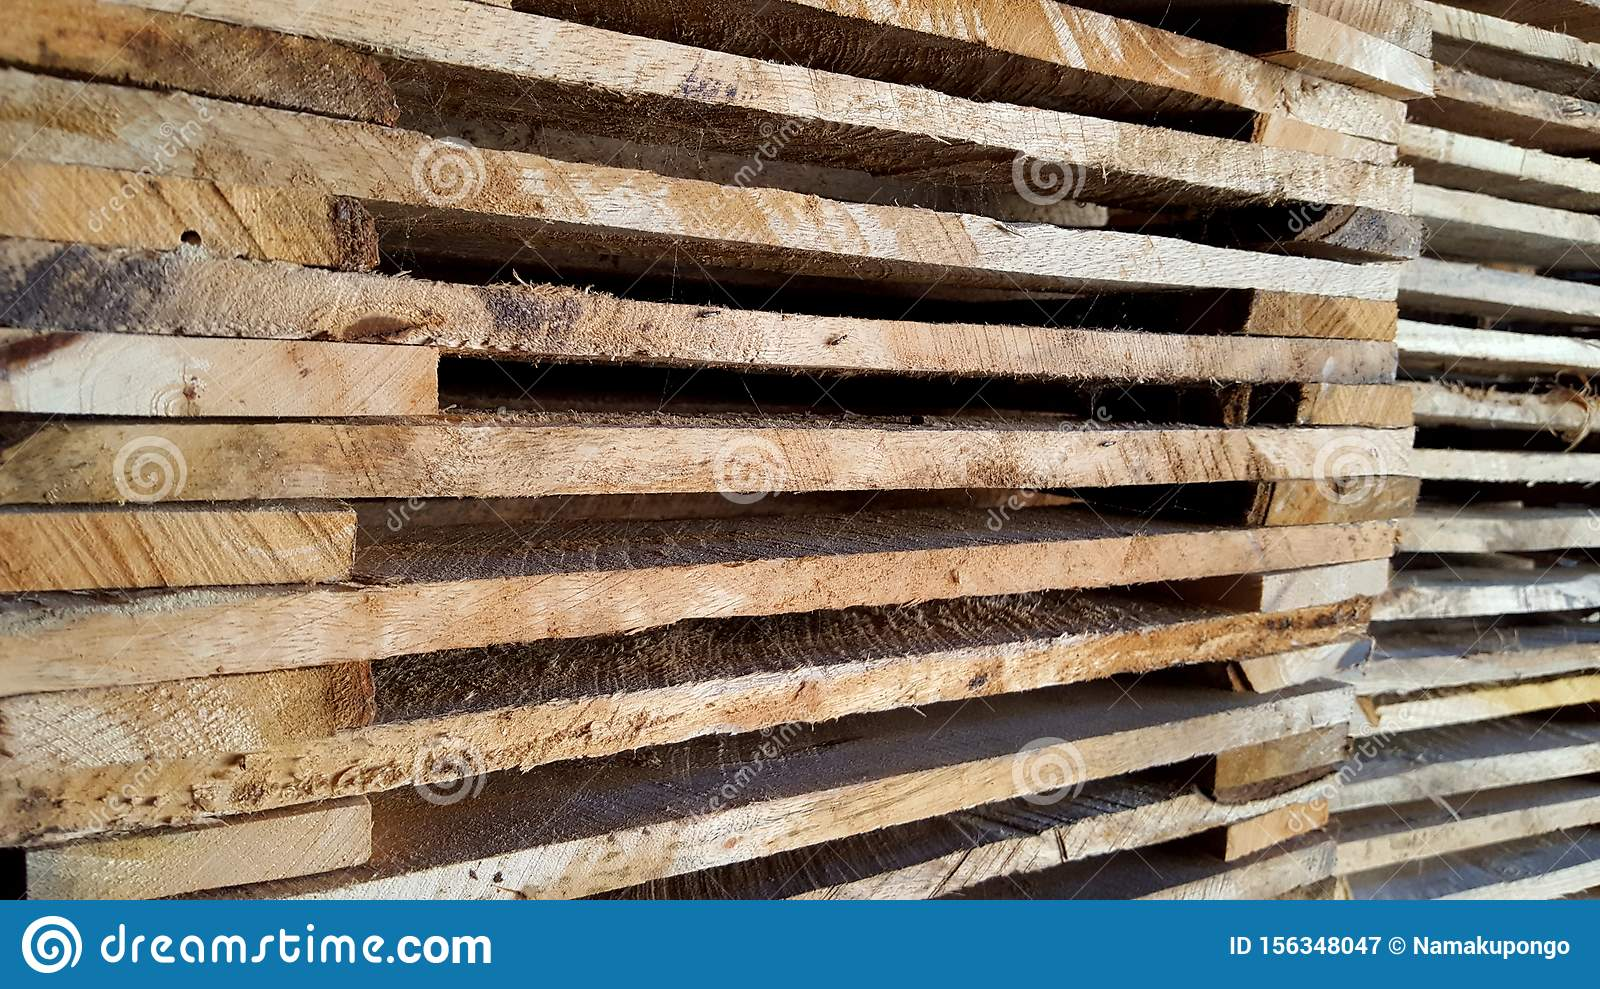 Stacks of wooden pallets, neatly lined up ready to use